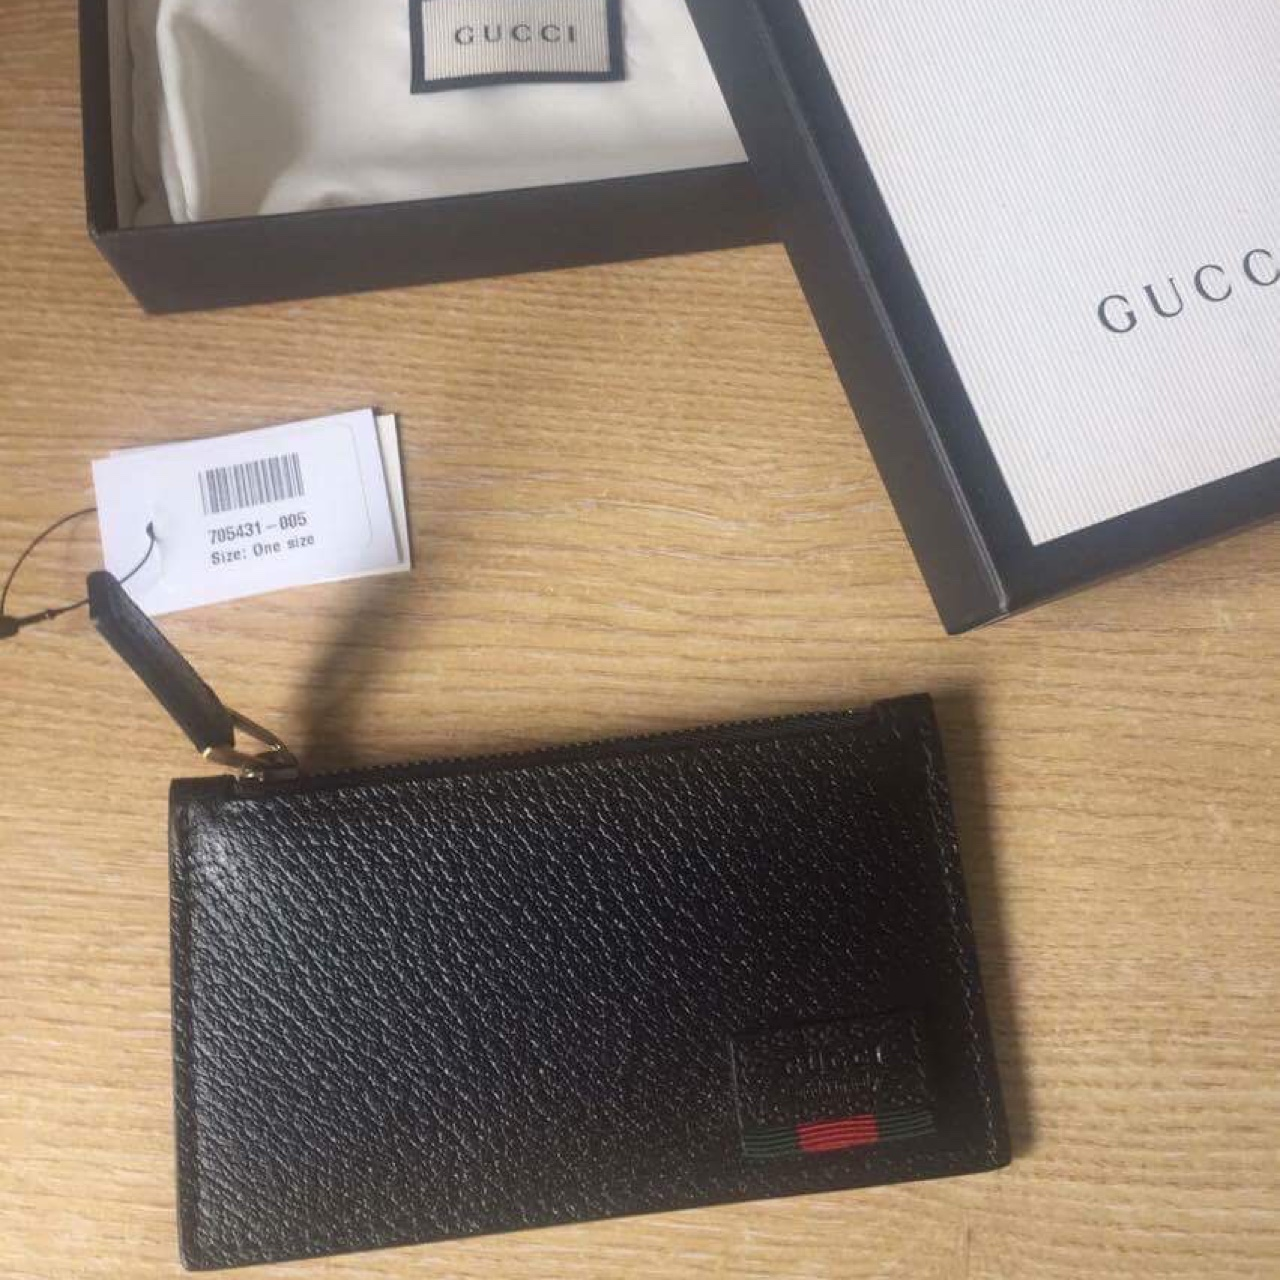 547d8769f6 GUCCI LEATHER CARD CASE WITH WEB • LAST DROP • A... - Depop